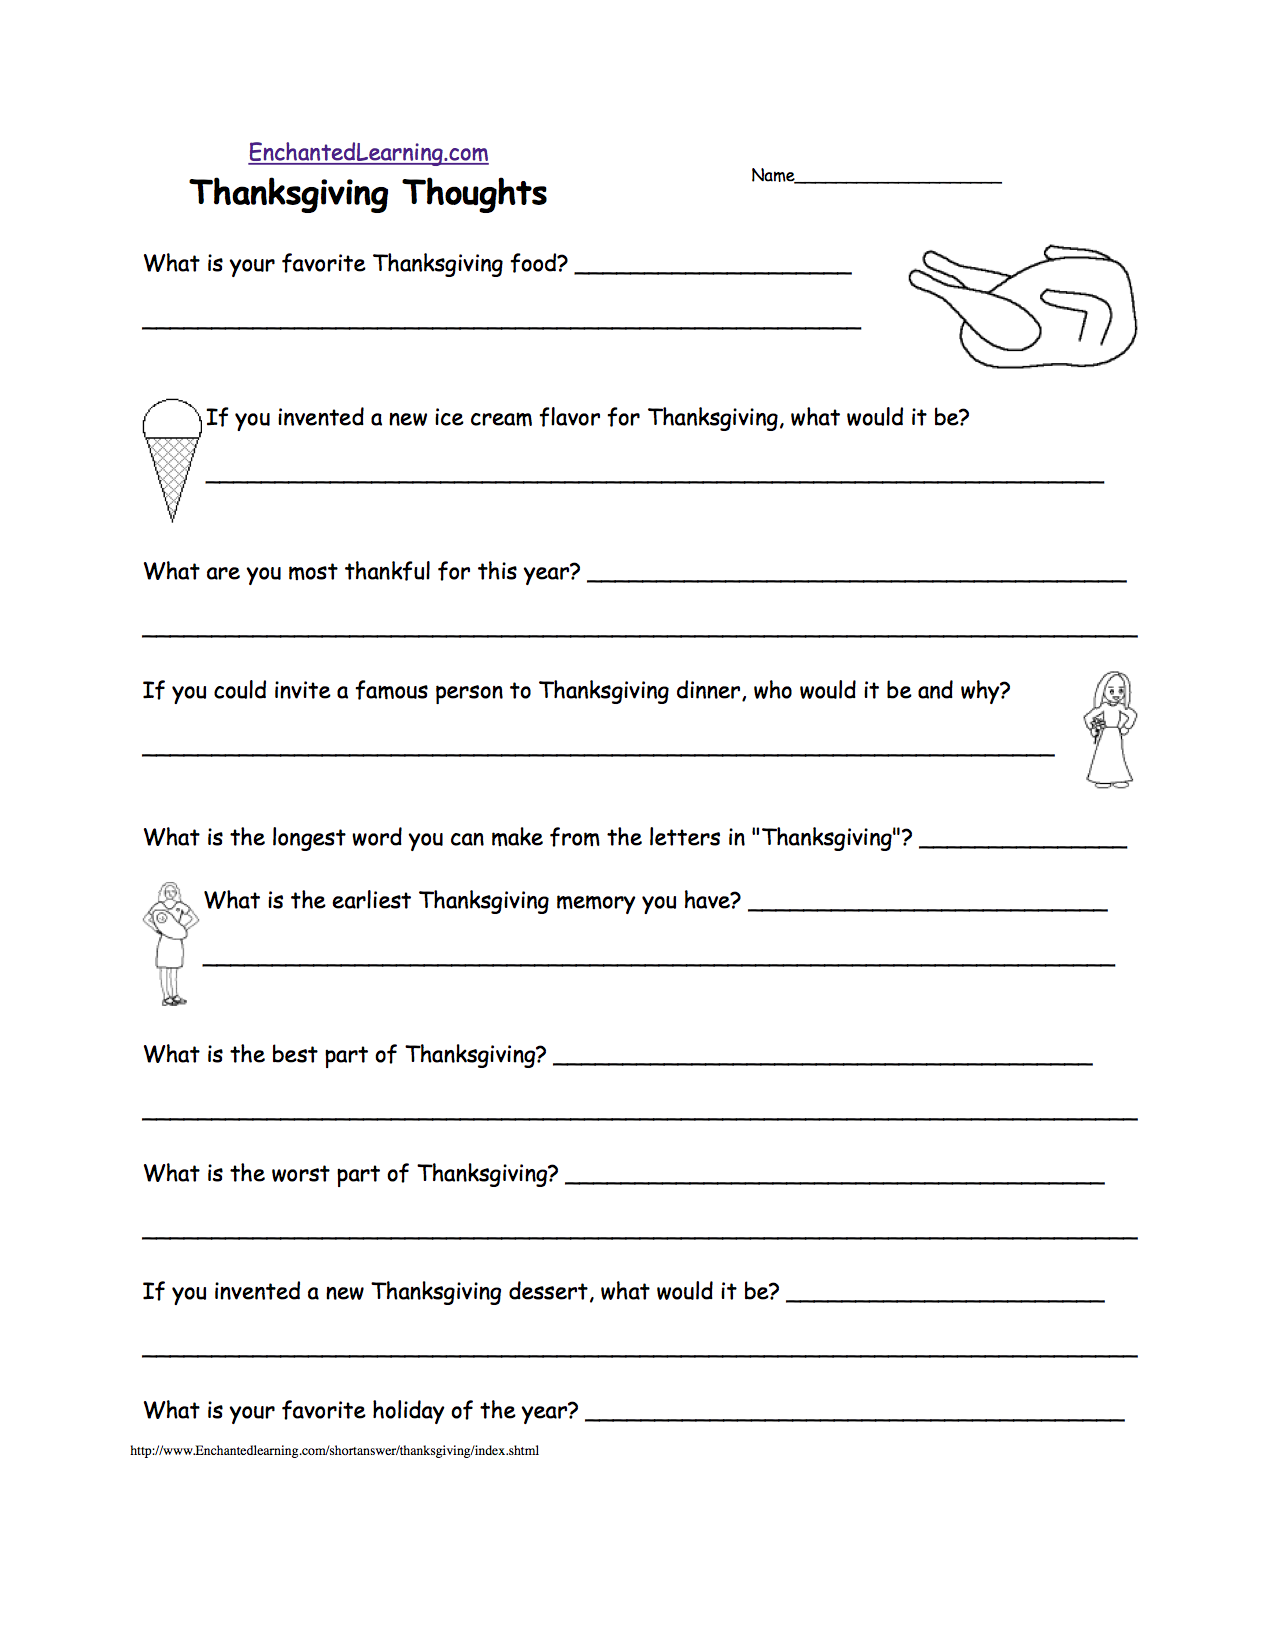 Grade 1 Pilgrims Thanksgiving Printable | Thanksgiving Printables ...